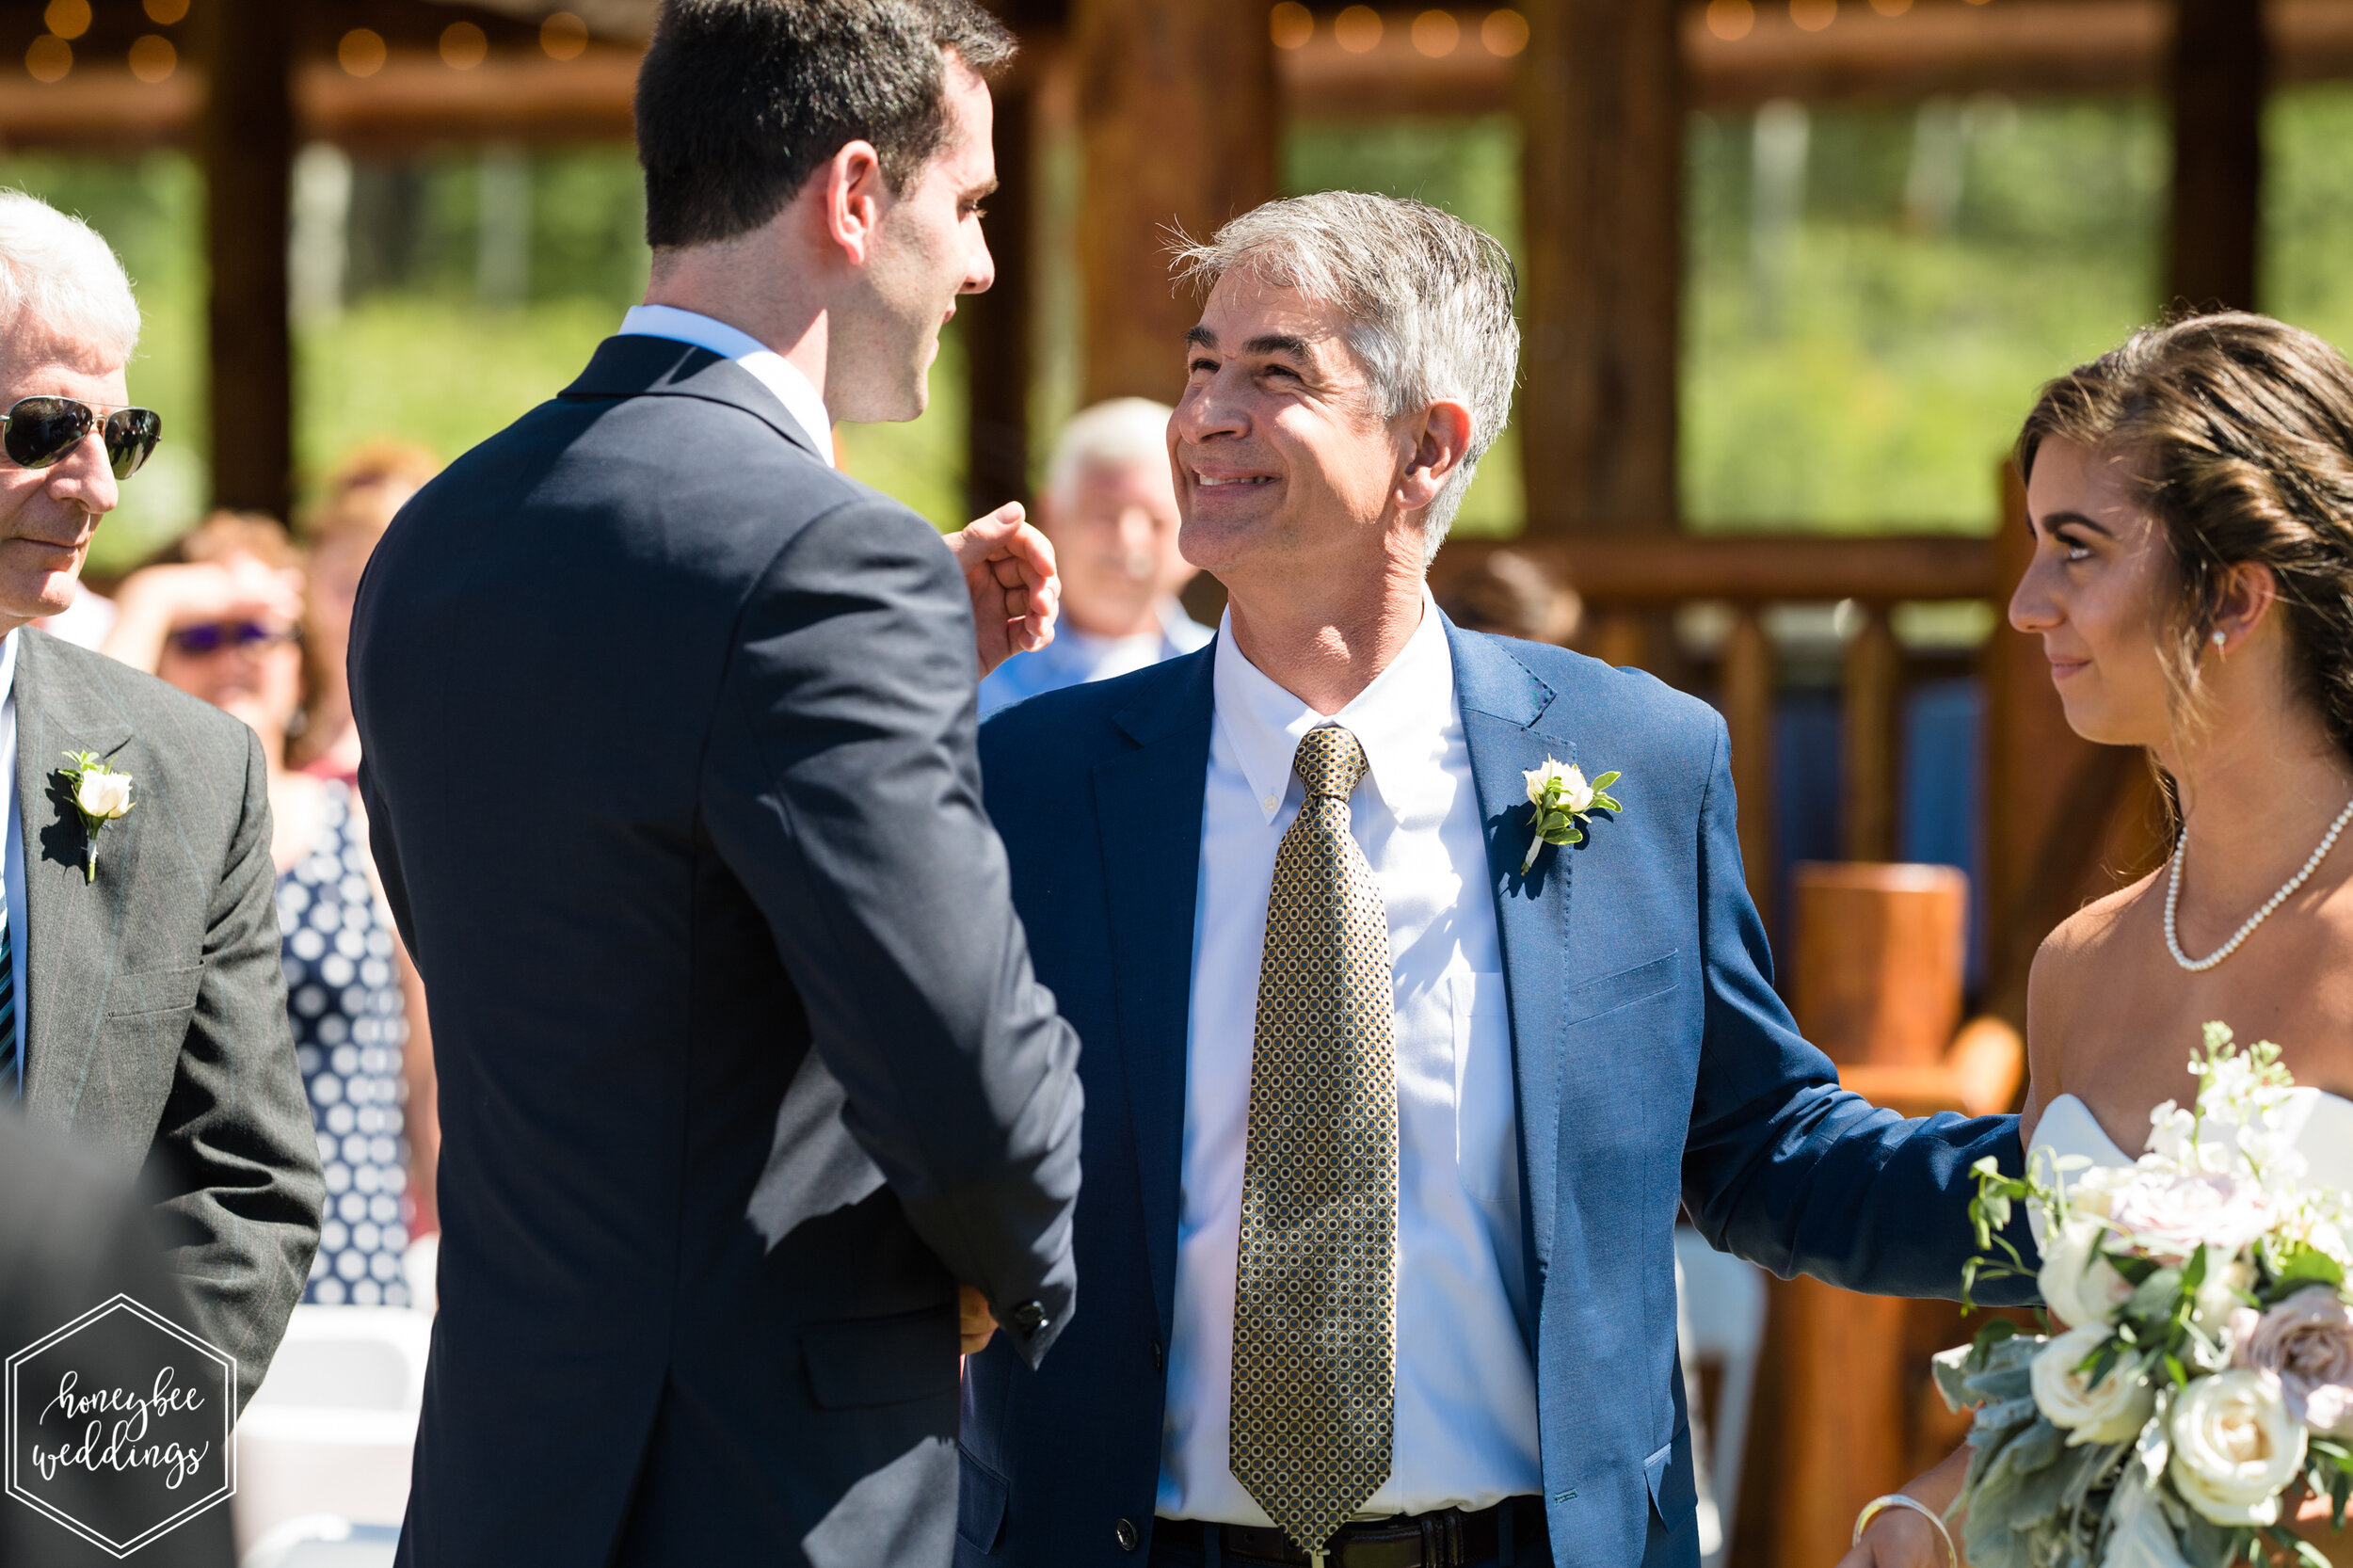 090Glacier National Park Wedding_Glacier Outdoor Center_Honeybee Weddings_Anna & Seth_July 21, 2019-1185.jpg